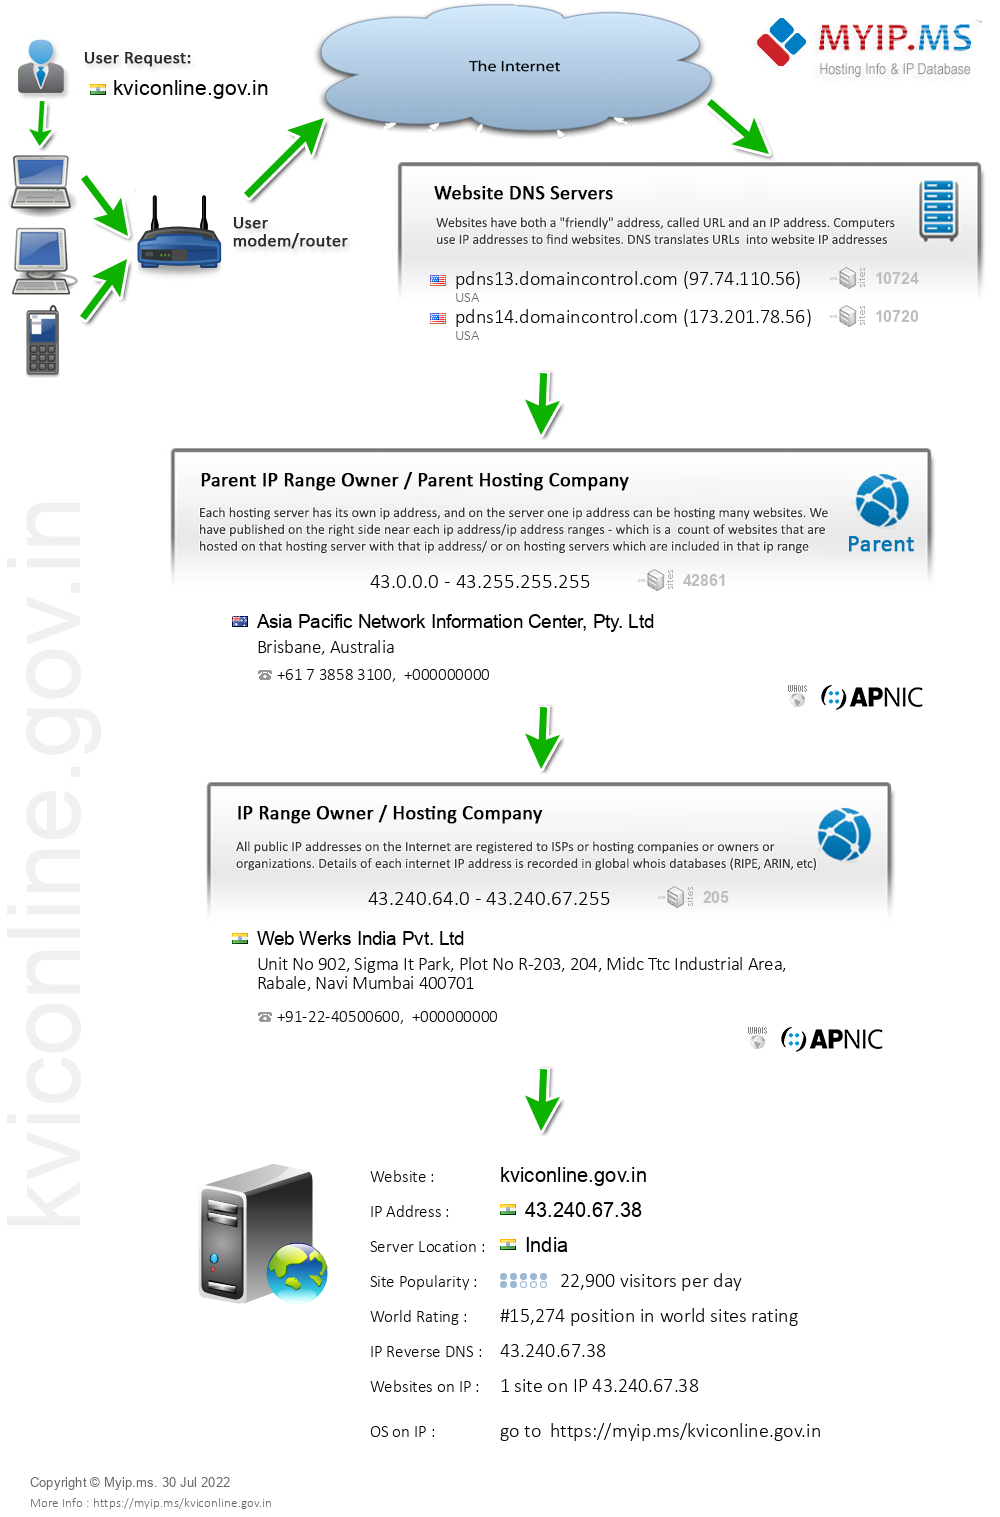 Kviconline.gov.in - Website Hosting Visual IP Diagram